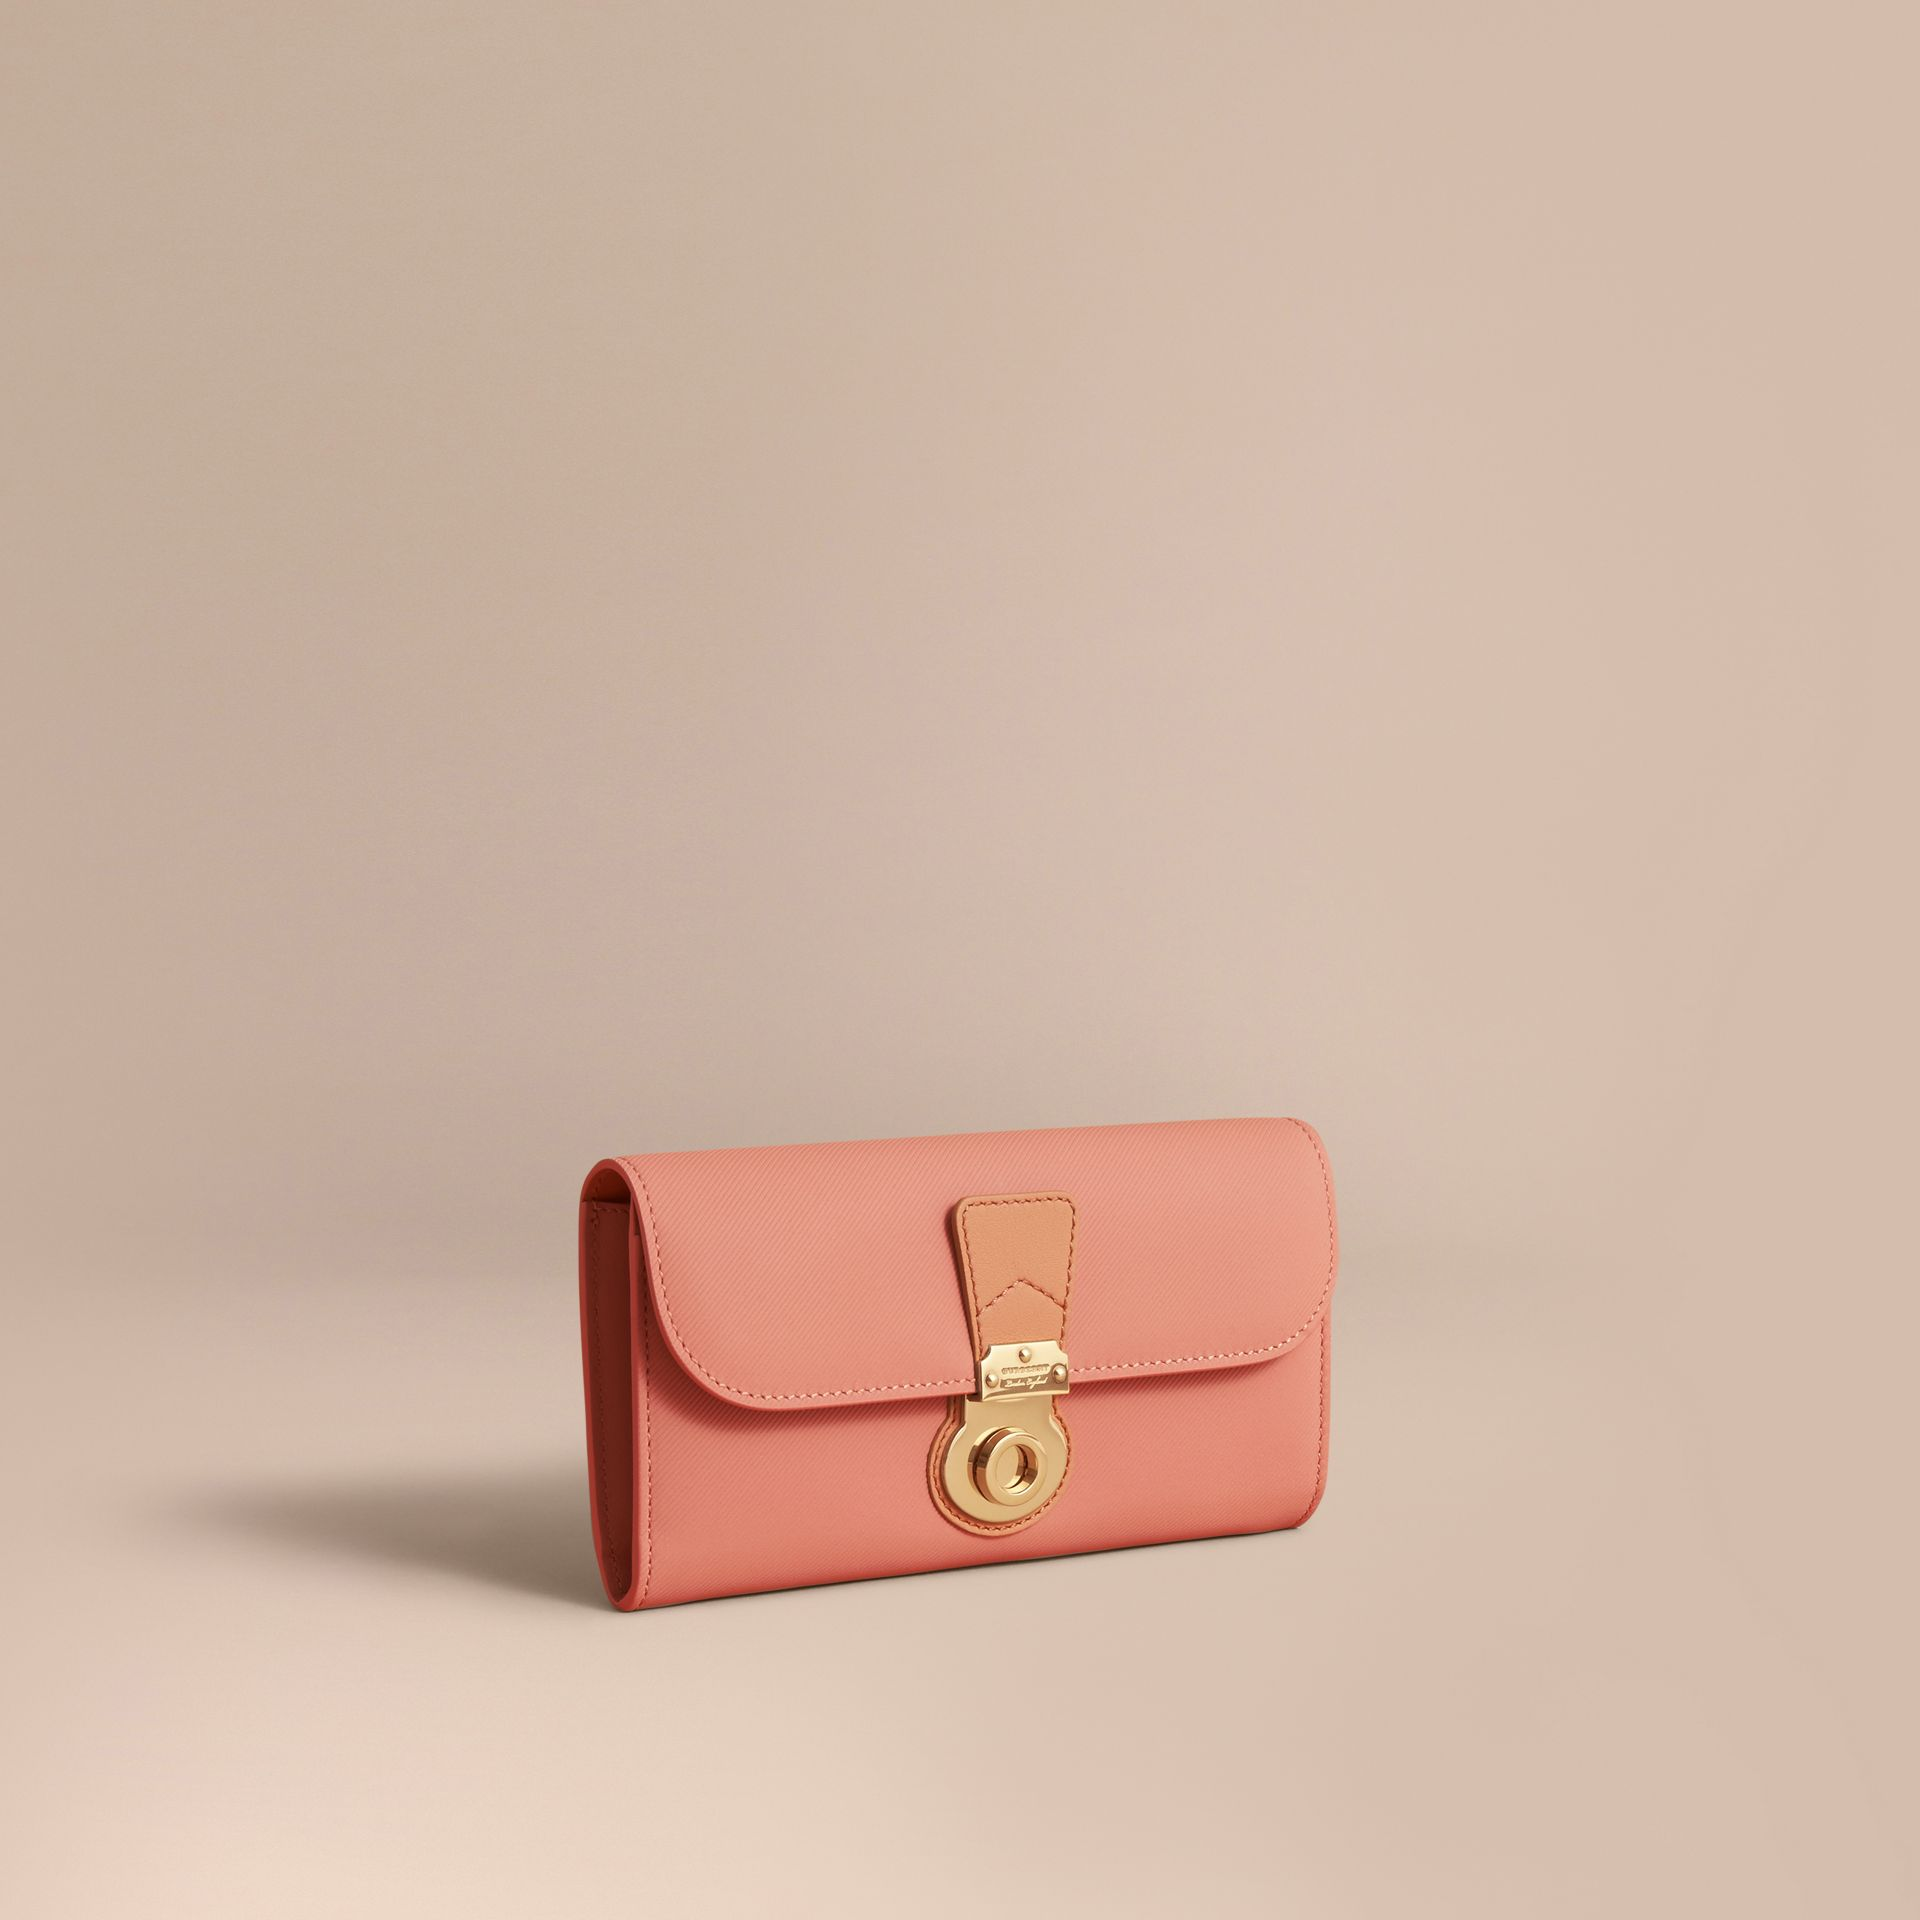 Two-tone Trench Leather Continental Wallet Ash Rose/pale Clementine - gallery image 1